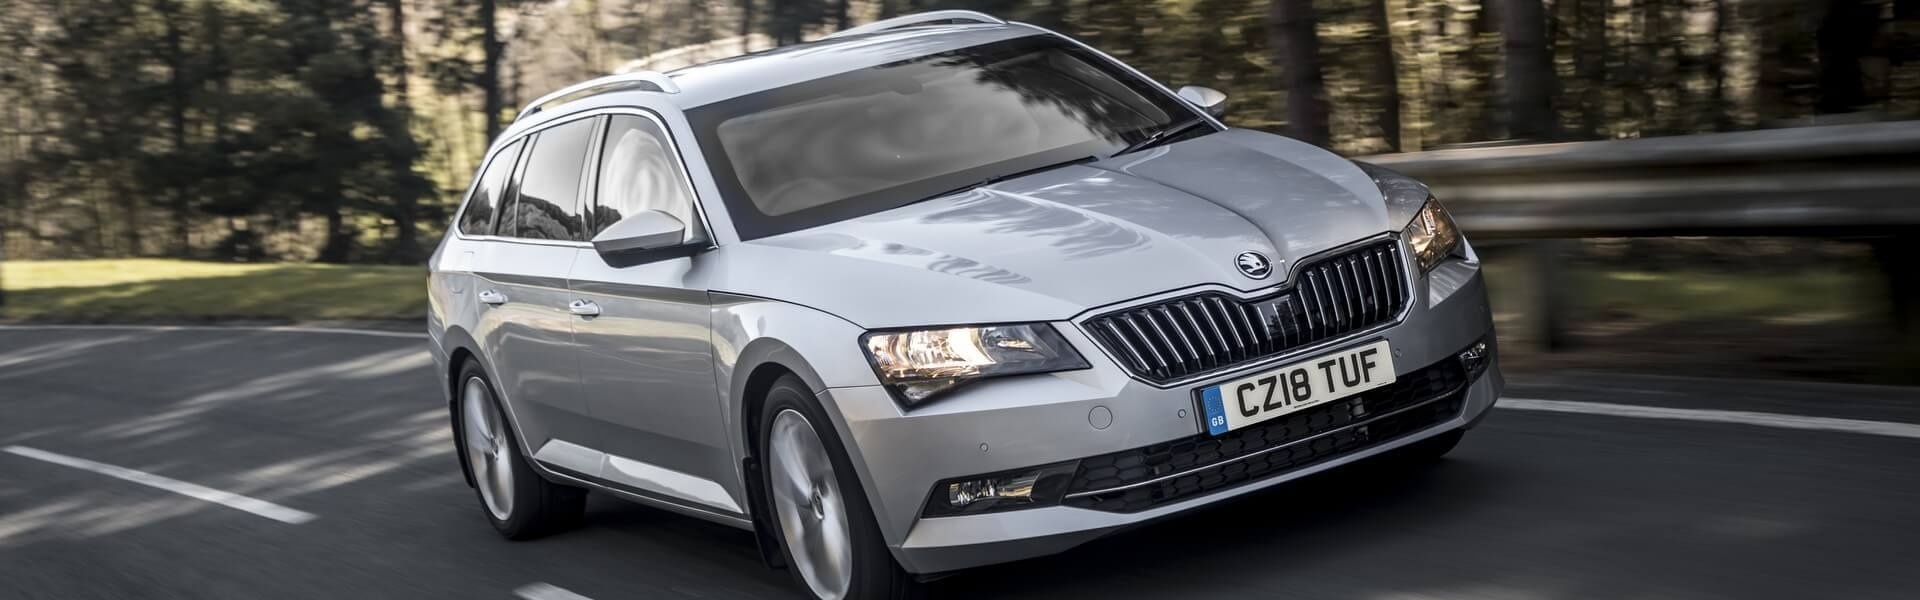 skoda_superb_blindado_2.jpg